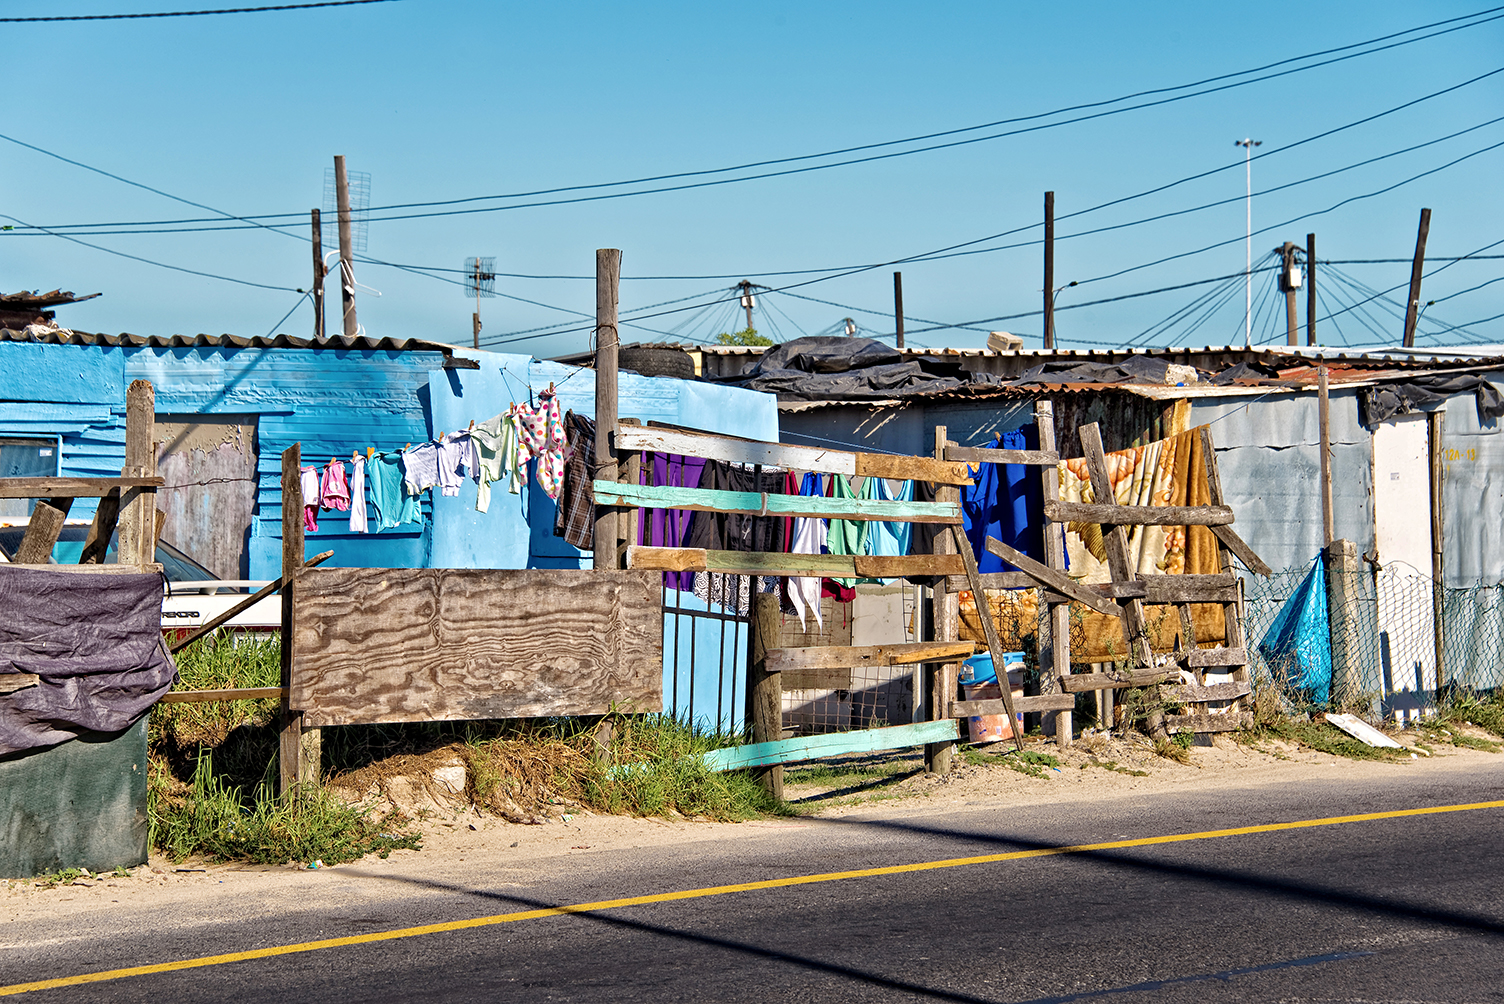 Image of makeshift wall of township in Cape Town South Africa